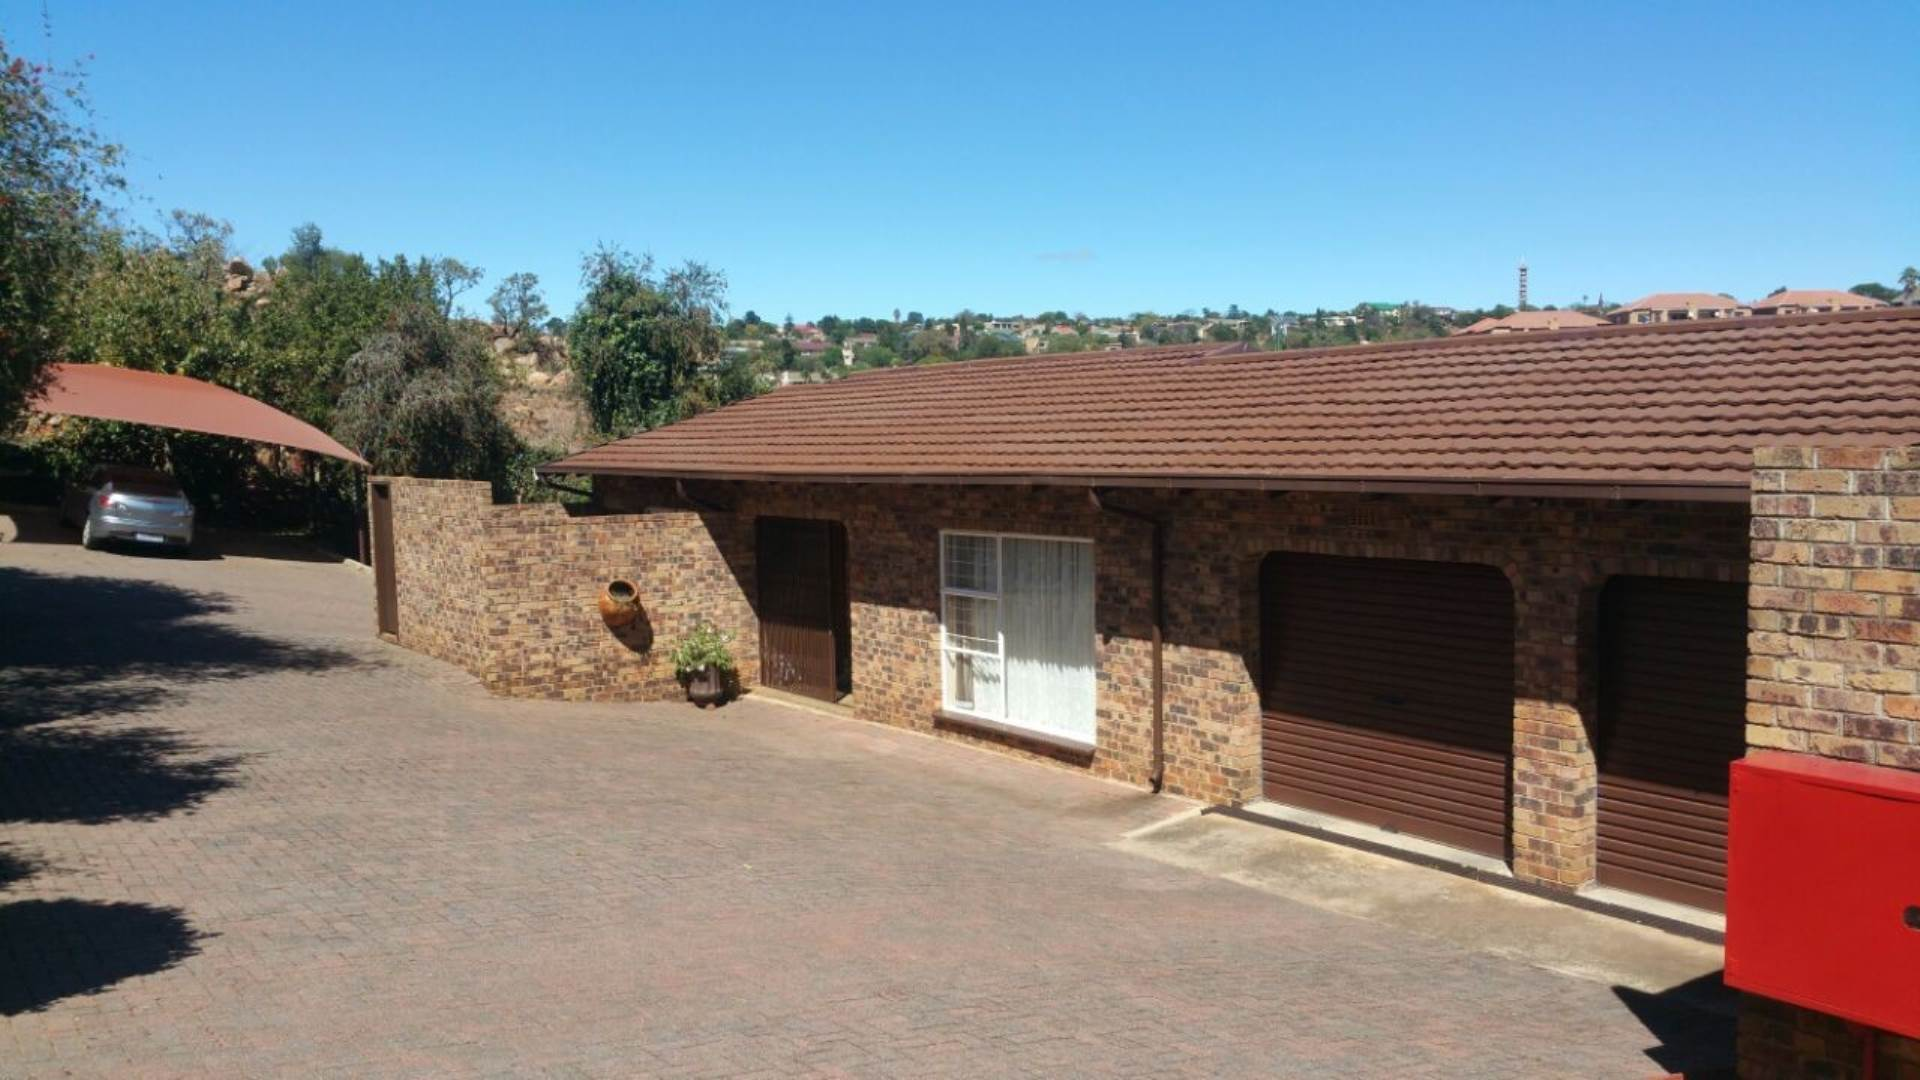 3 BedroomTownhouse For Sale In Breaunanda